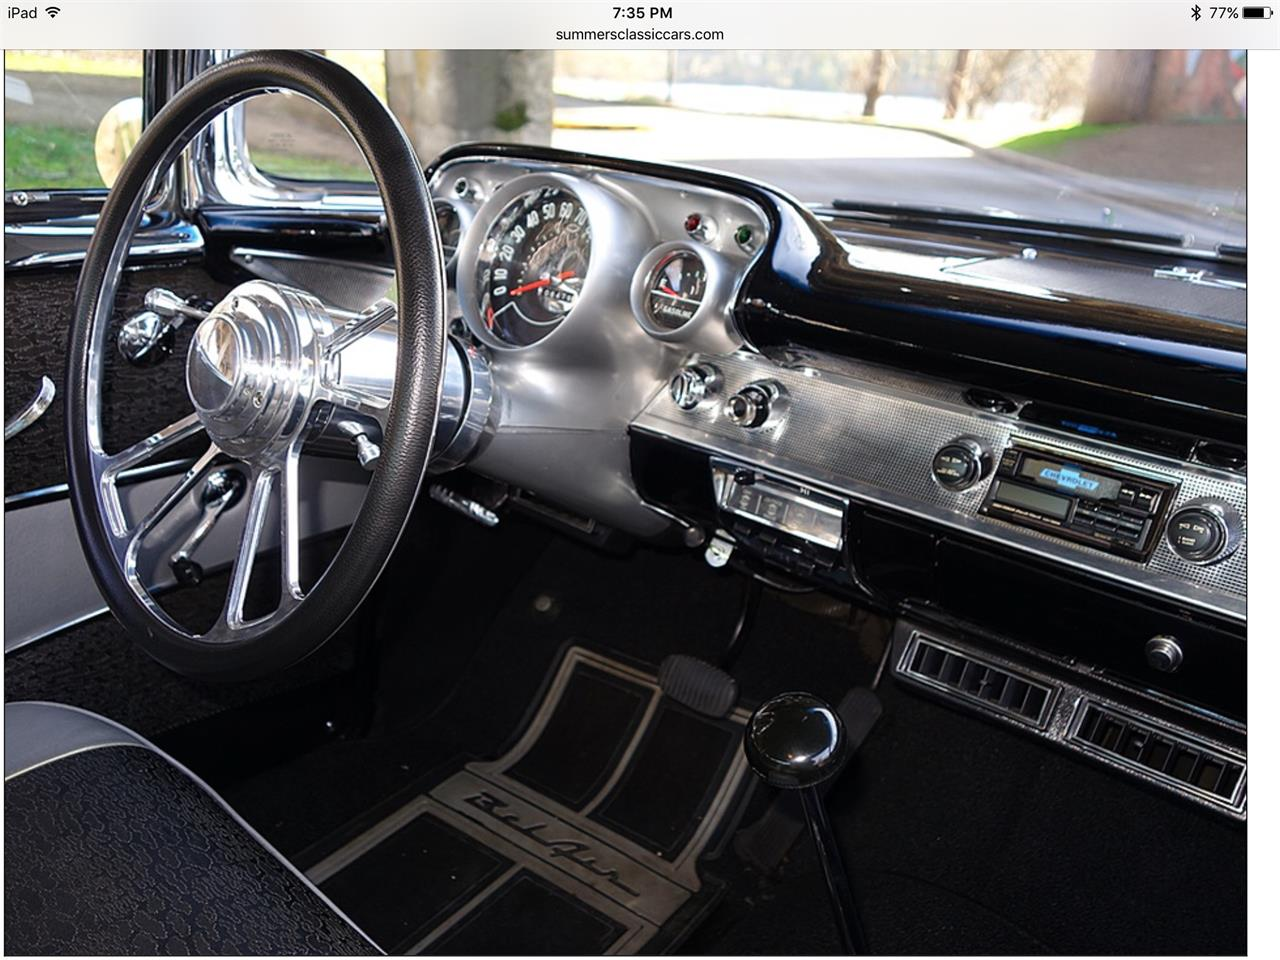 Large Picture of Classic 1957 Bel Air located in Stamford Connecticut - $79,000.00 - Q2Q9